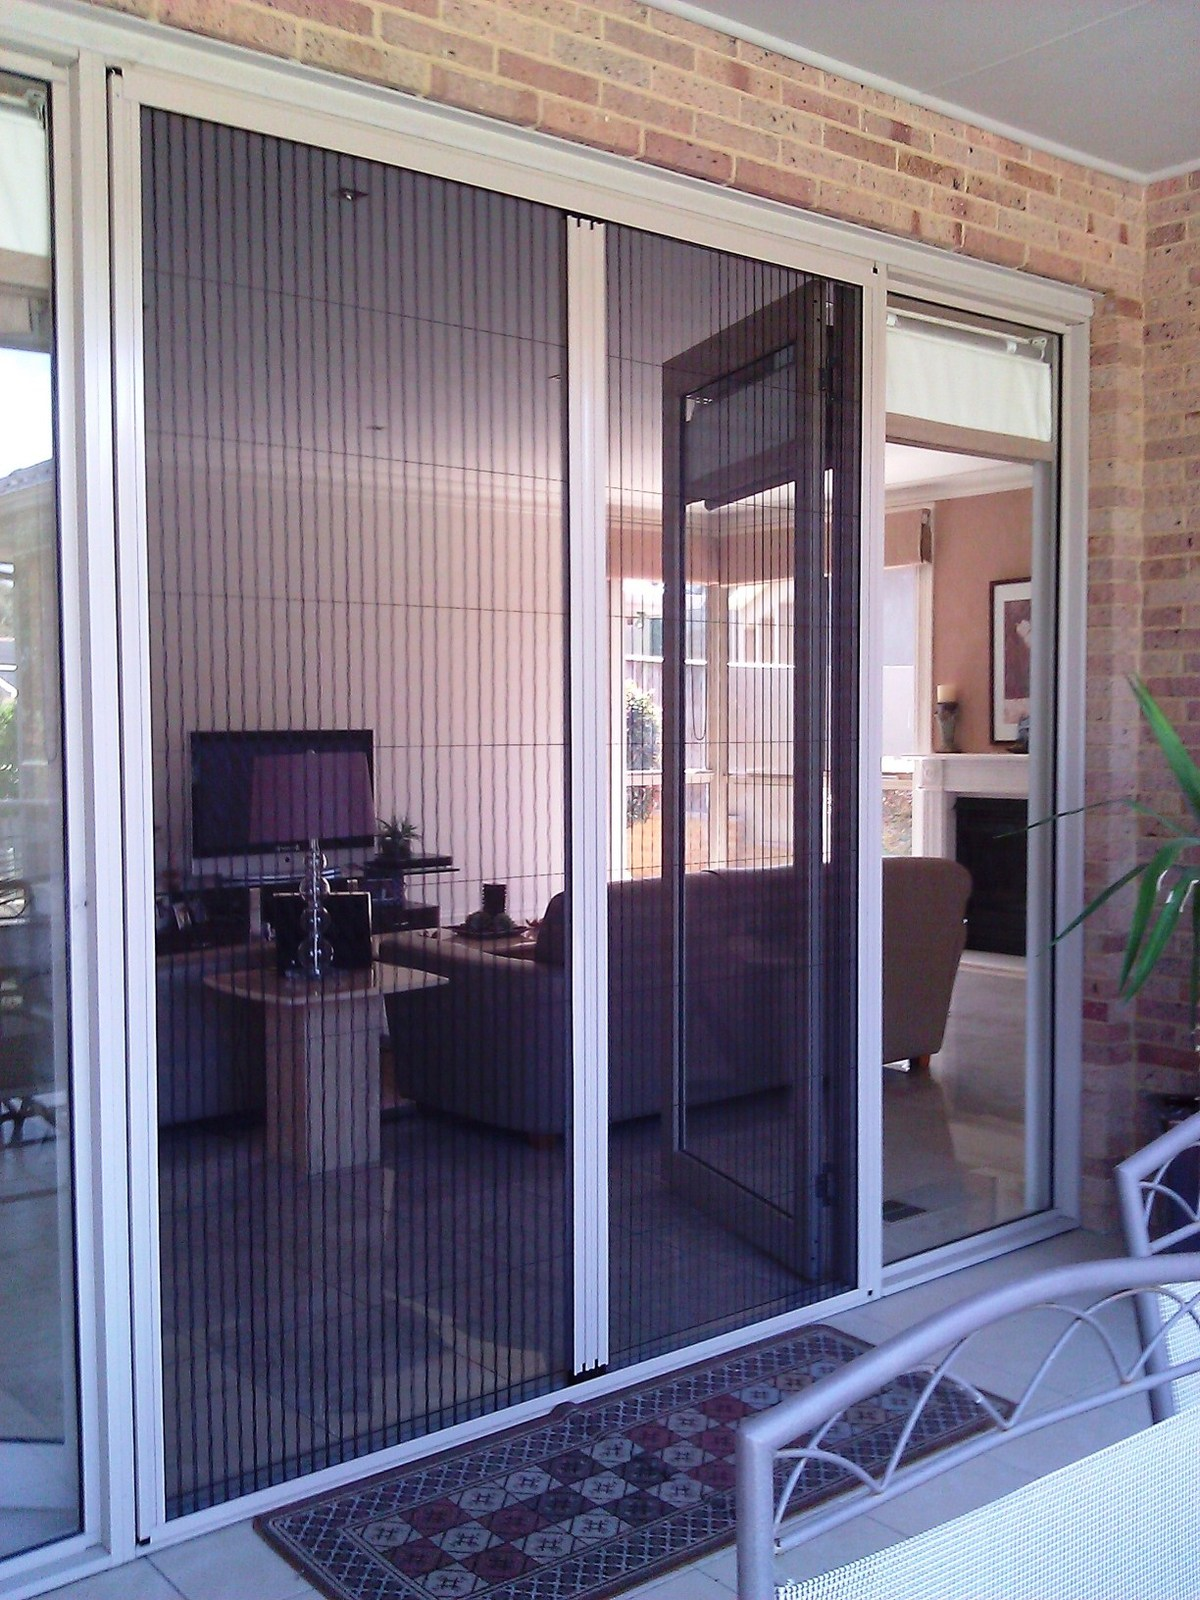 retractable screen doors serdal deveci archinect picture of collapsible screen doors 2e509d6480